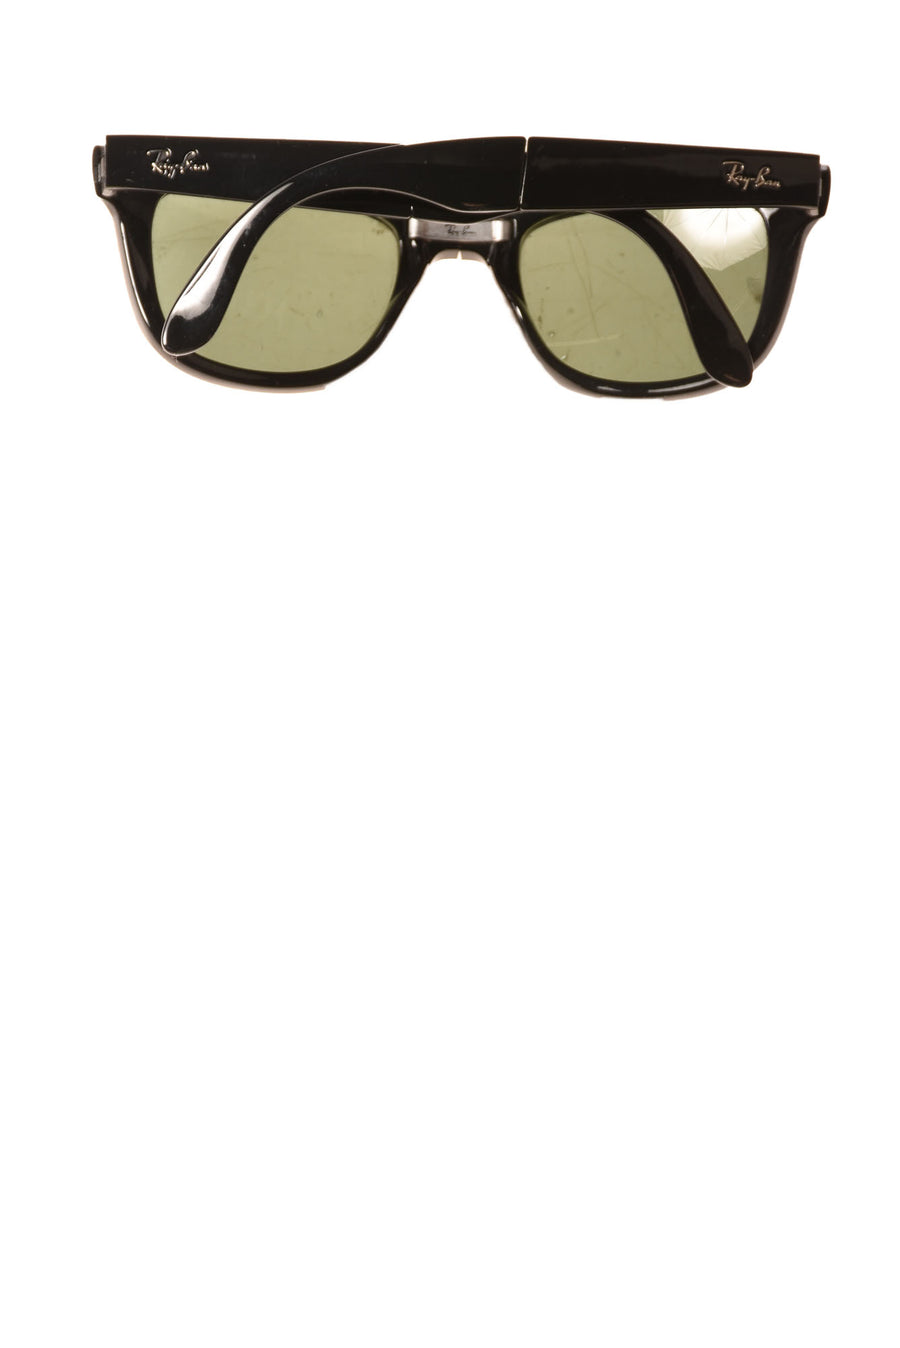 Men's Glasses With Case By Ray Ban